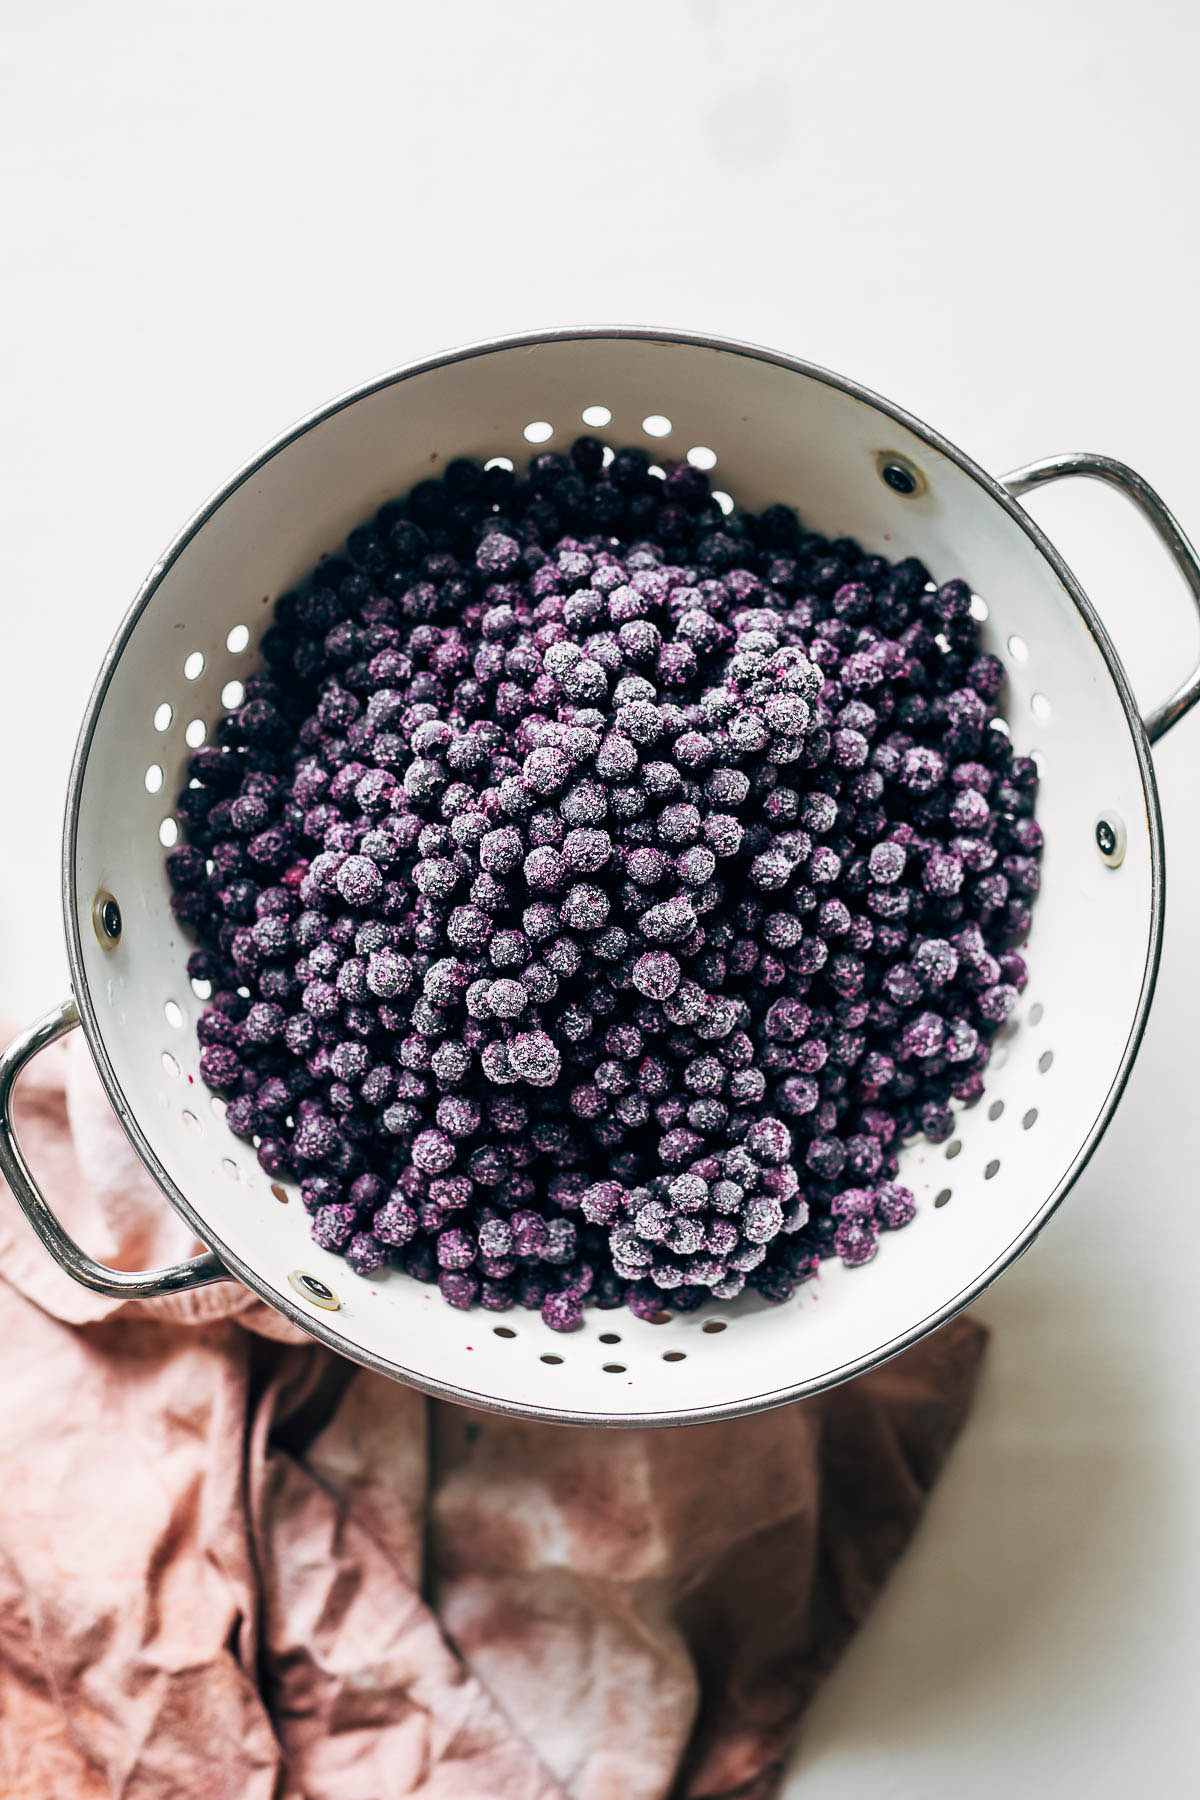 Frozen blueberries in a white colander.